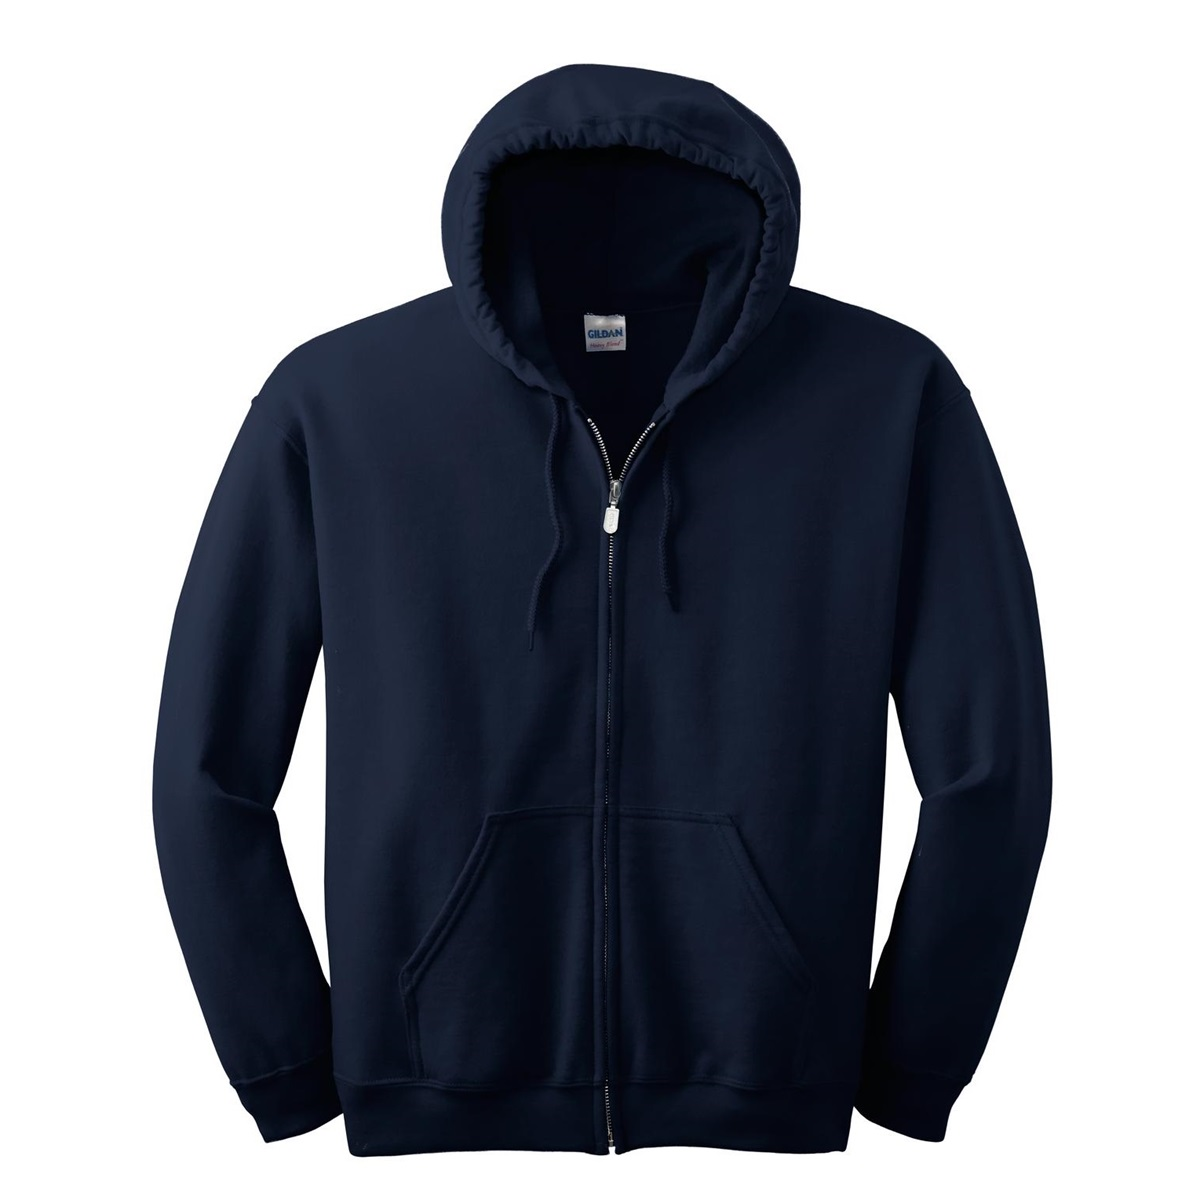 Shop for great New York Yankees hoodies and sweatshirts from the MLB Shop and battle the cold weather this winter in style. Get New York Yankees pullovers, sweaters, zip ups, fleeces, and more.